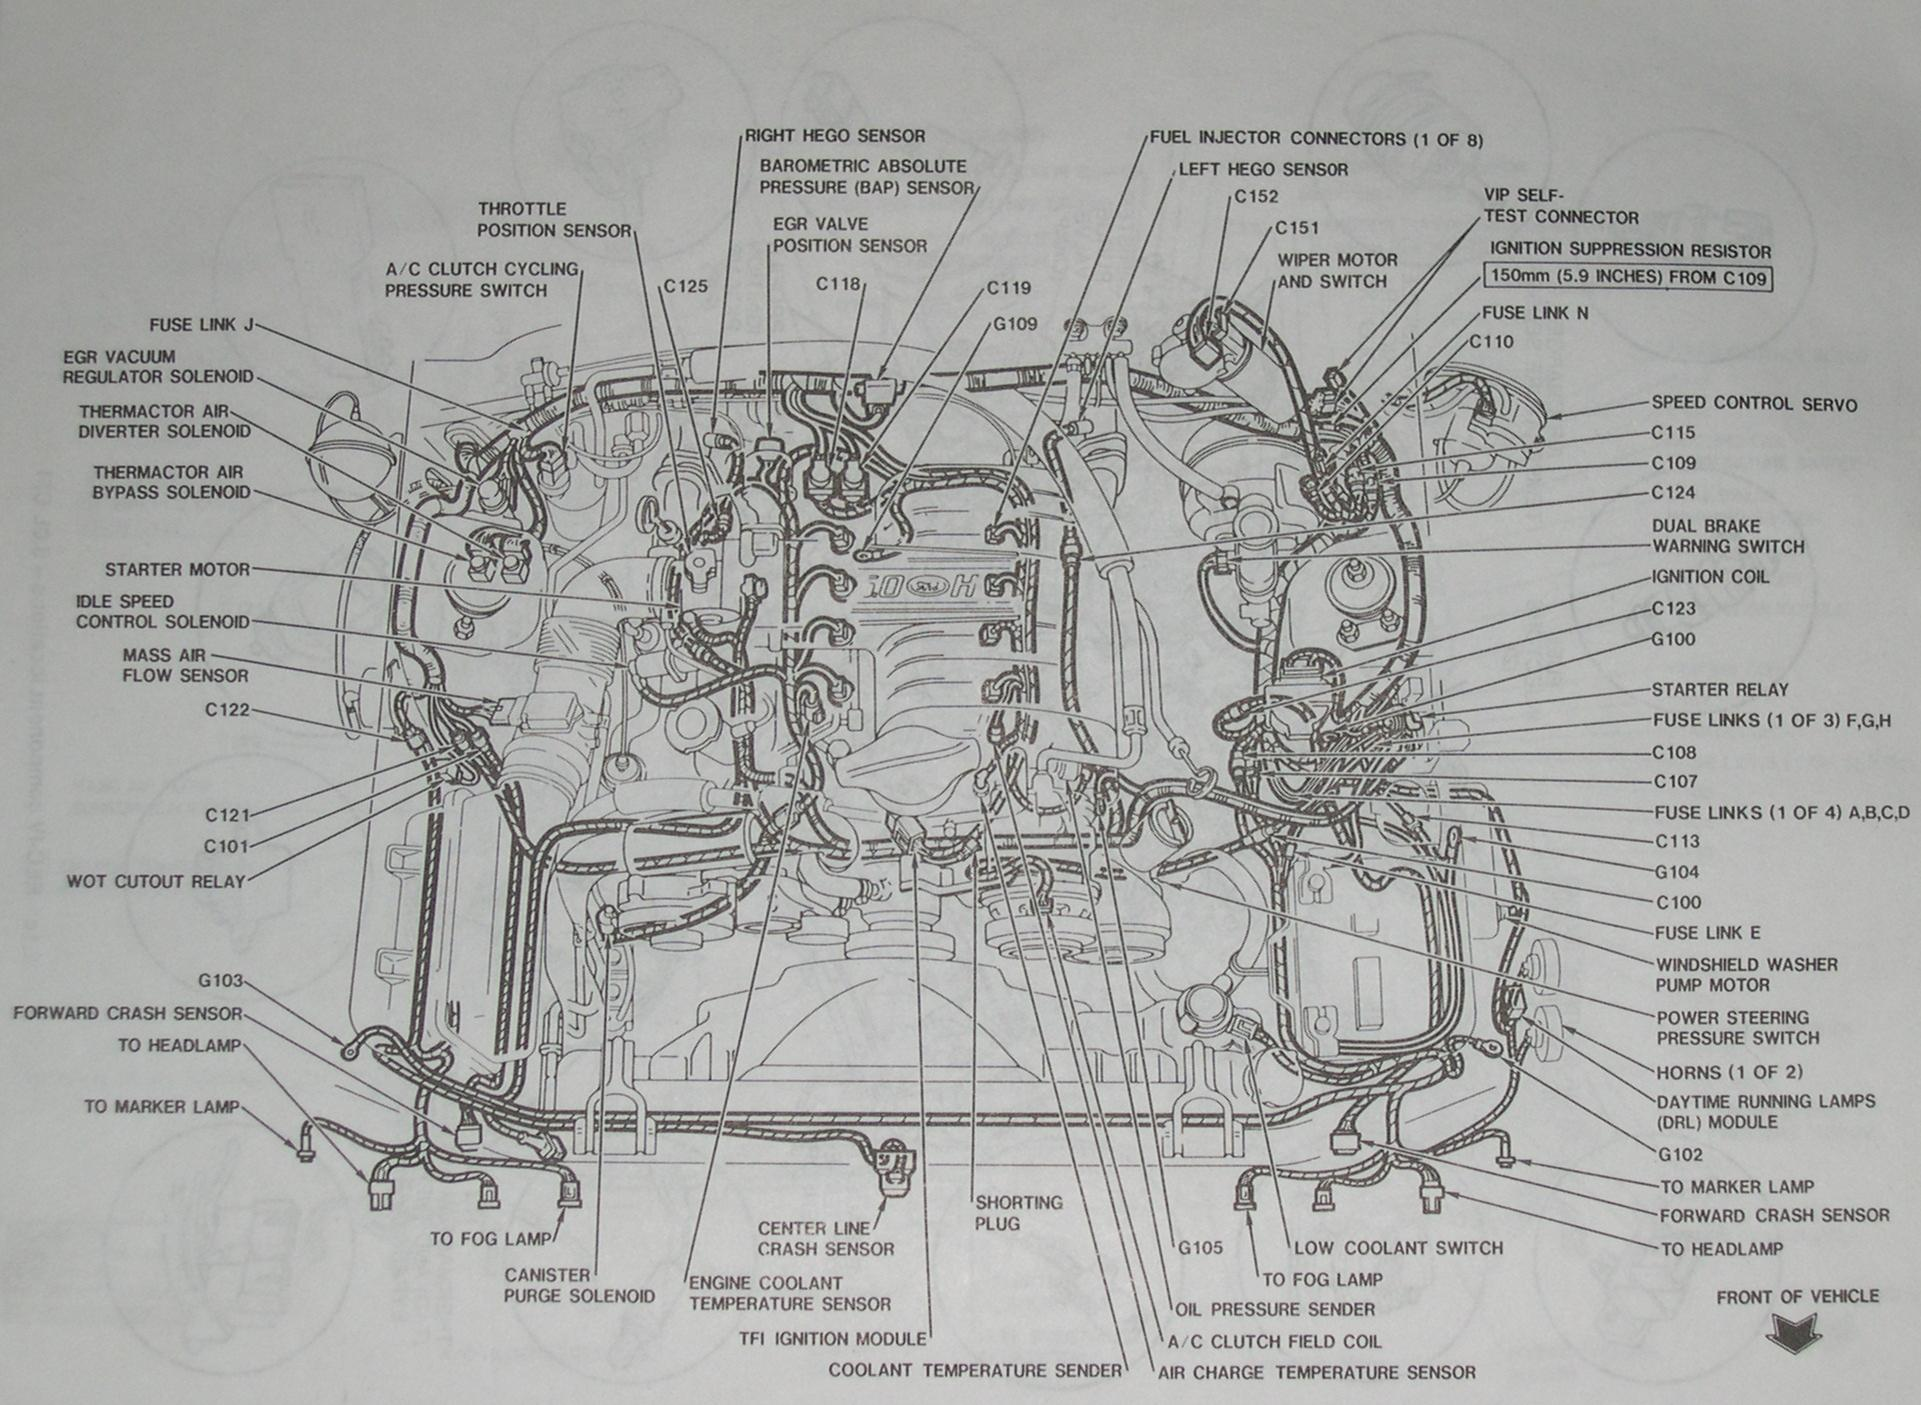 94 Mustang Wiring Harness | Wiring Diagram on